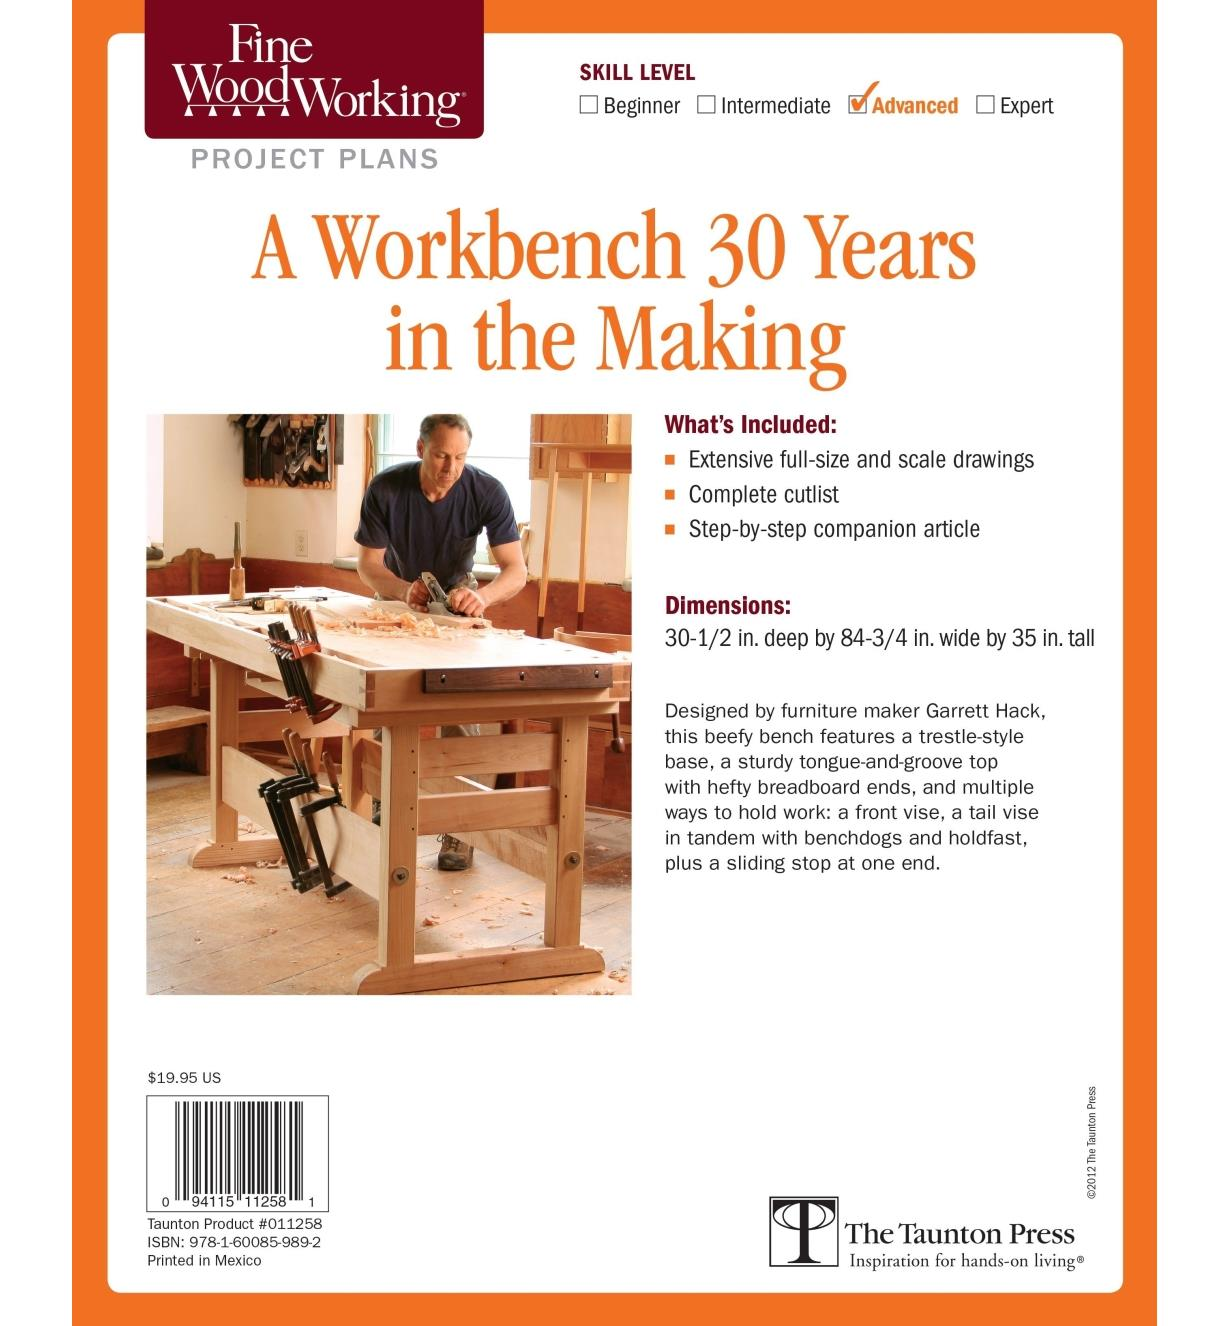 73L2545 - A Workbench 30 Years in the Making Plan